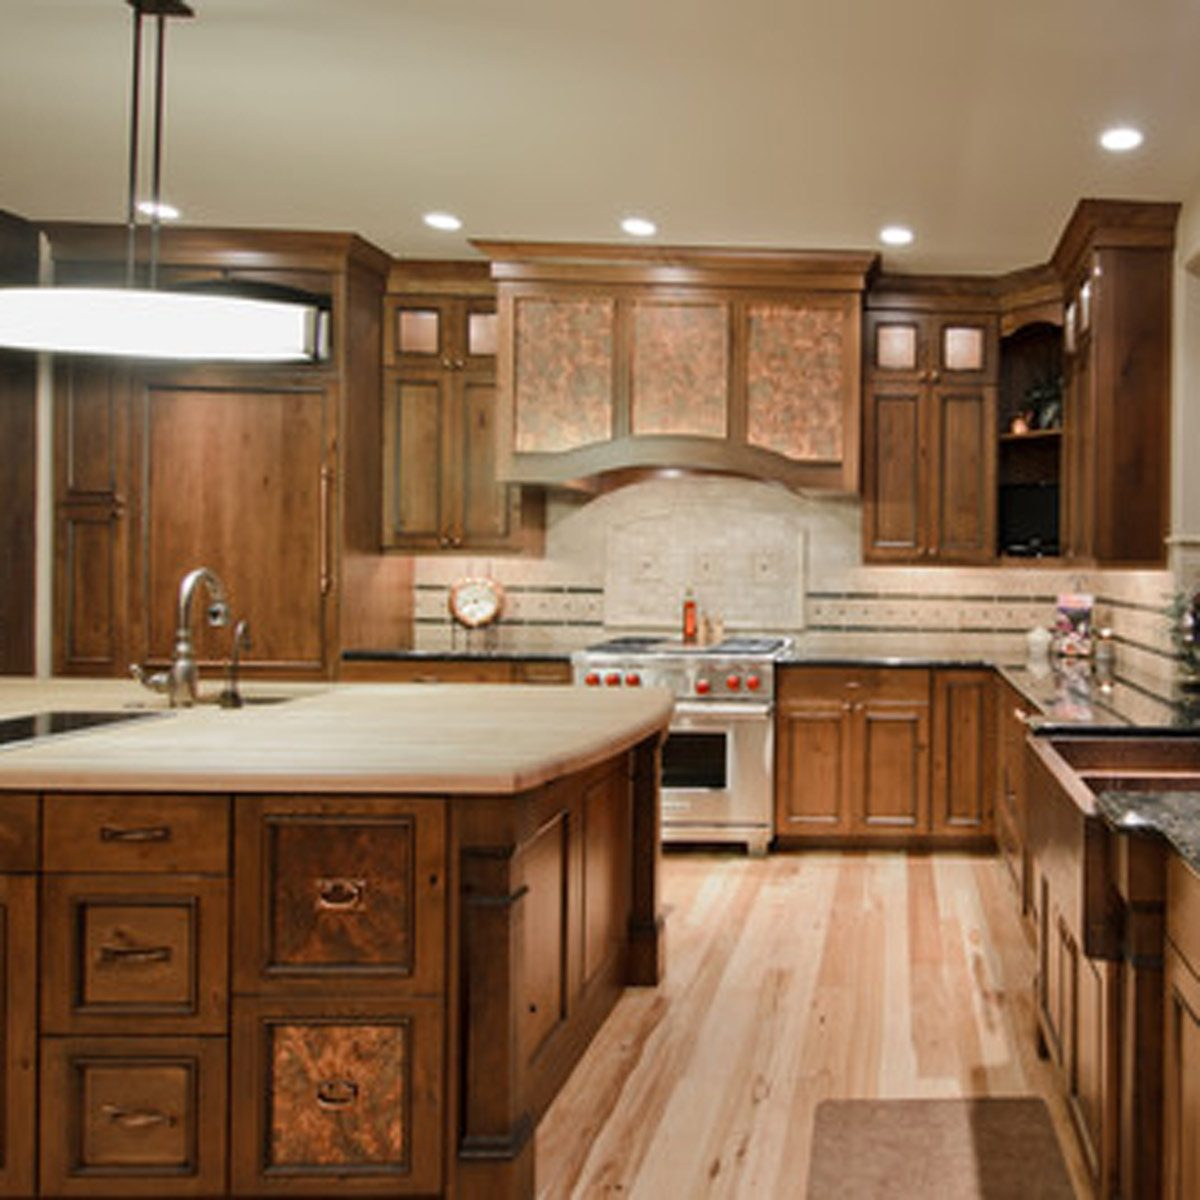 Kitchen Cabinets Doors: 10 Different (But Cool) Ideas For Kitchen Cabinet Doors